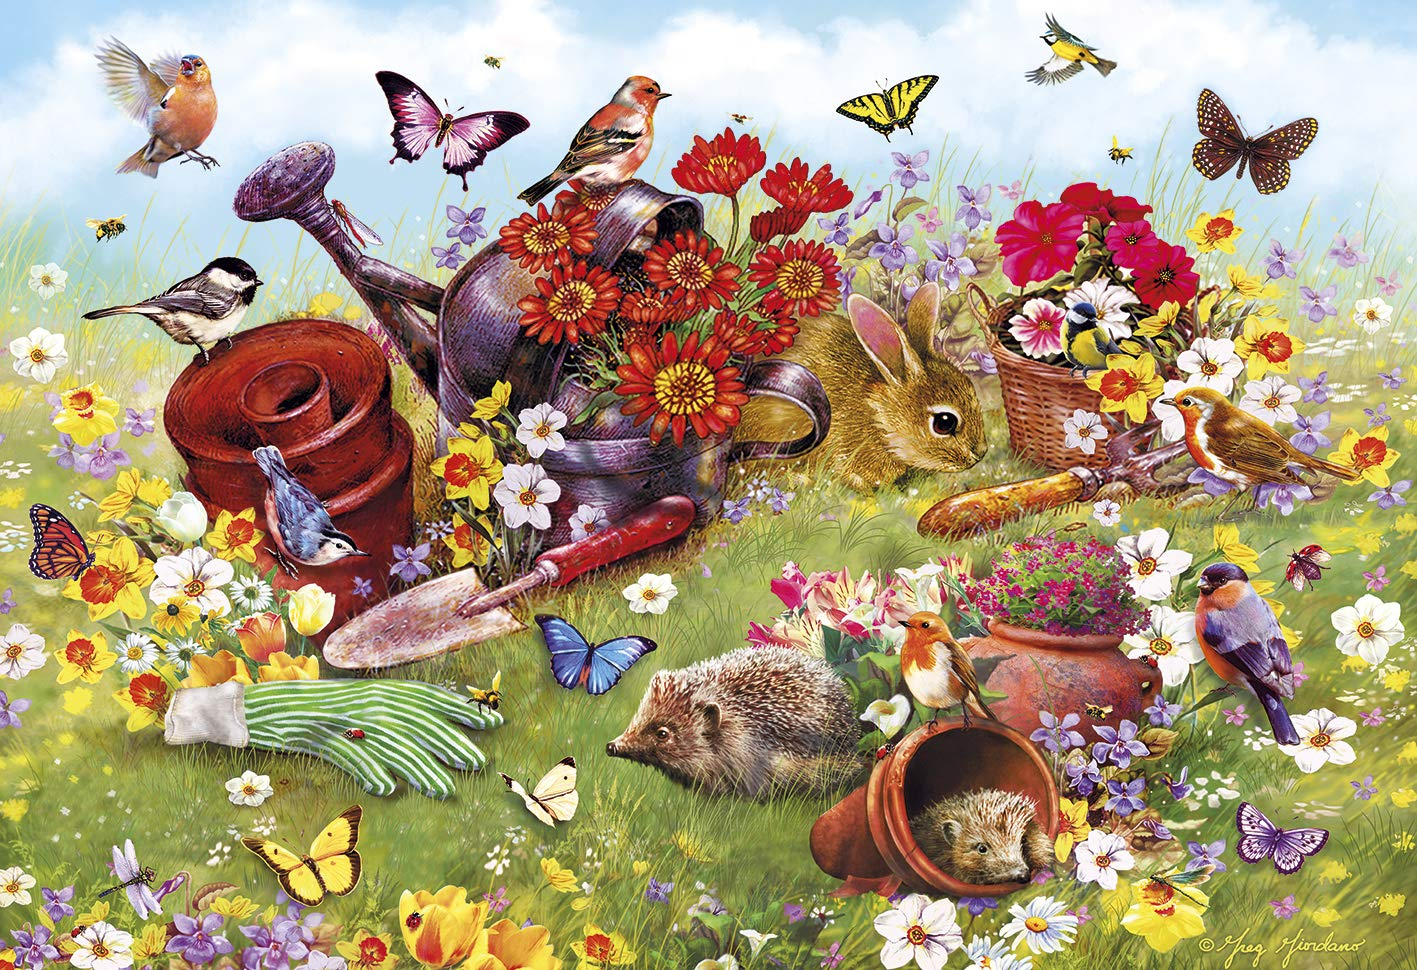 gibsons-in-the-garden-500-teile-puzzle-gibsons-g3122